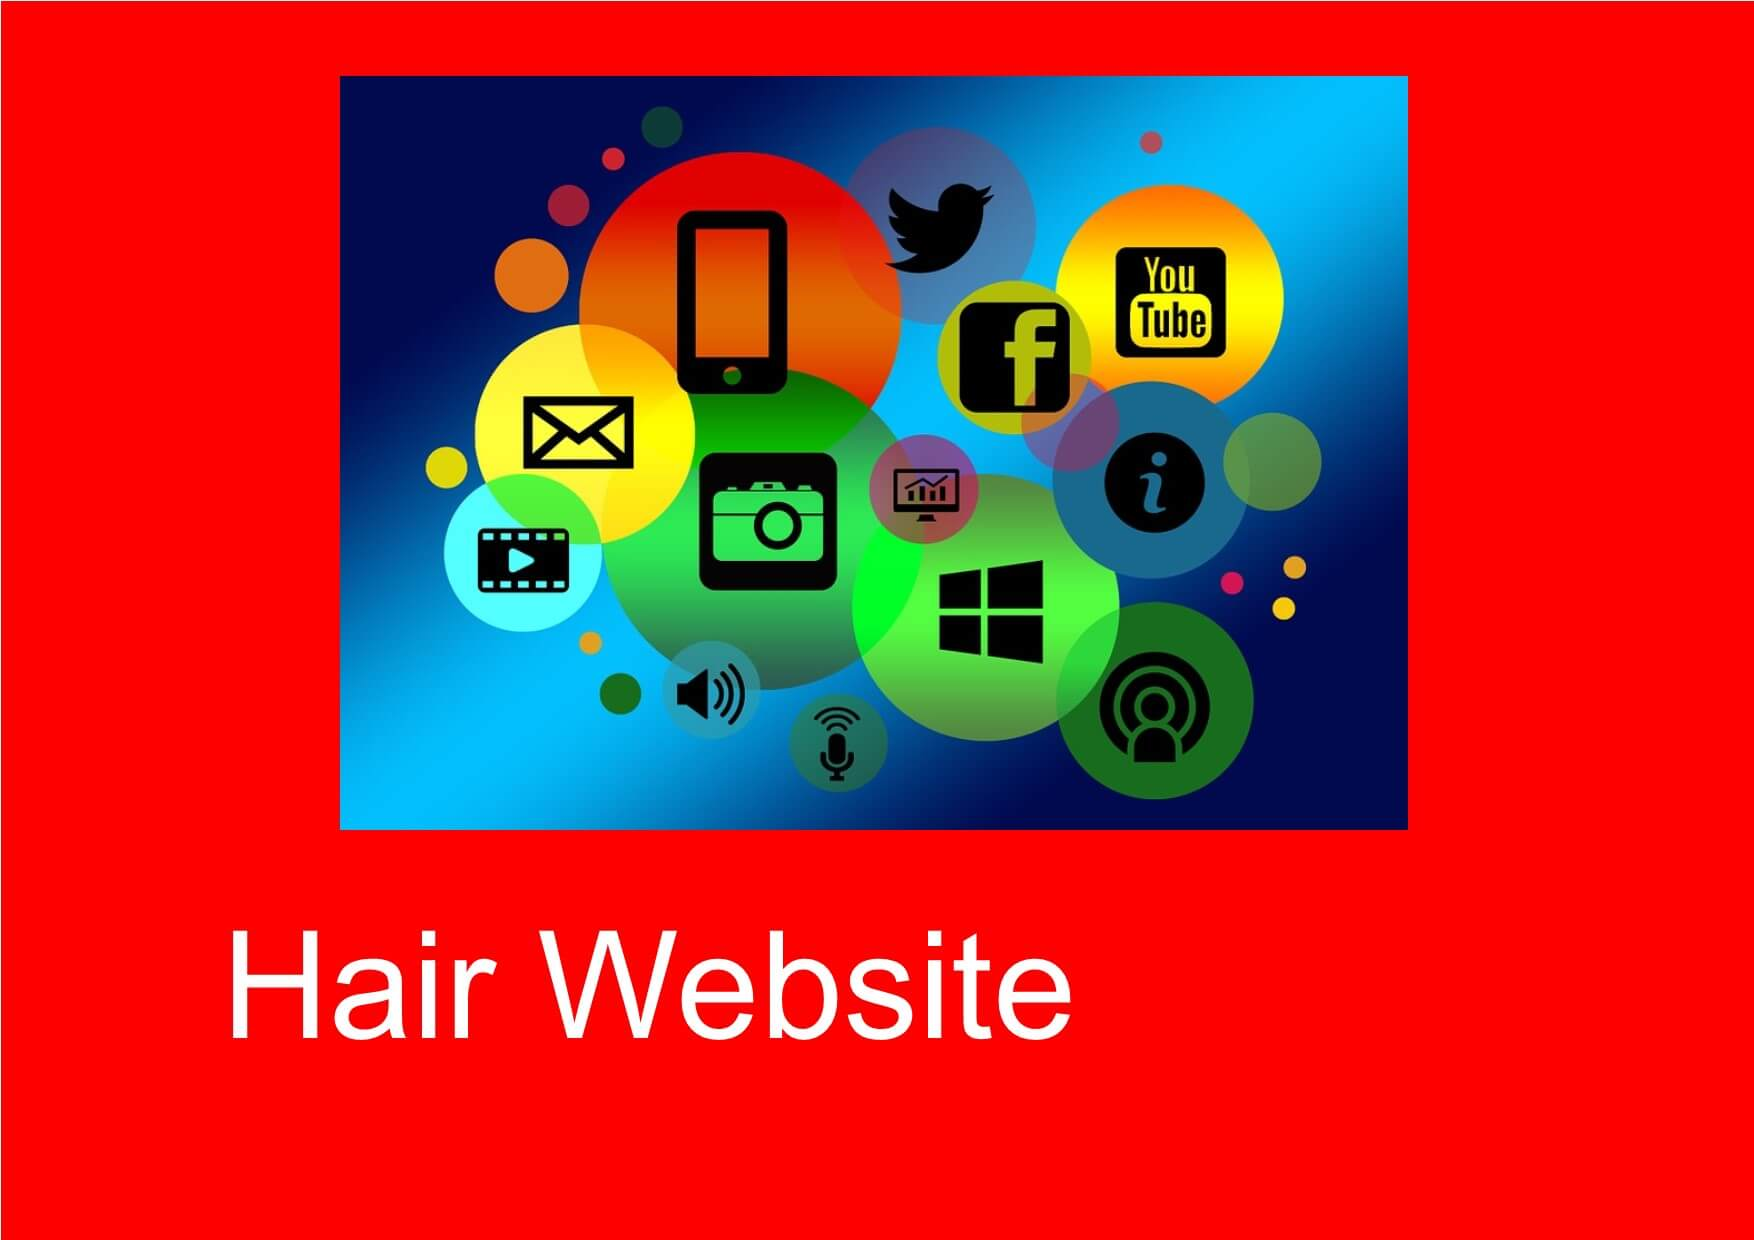 Start Your Own Hair Business and Make More Money